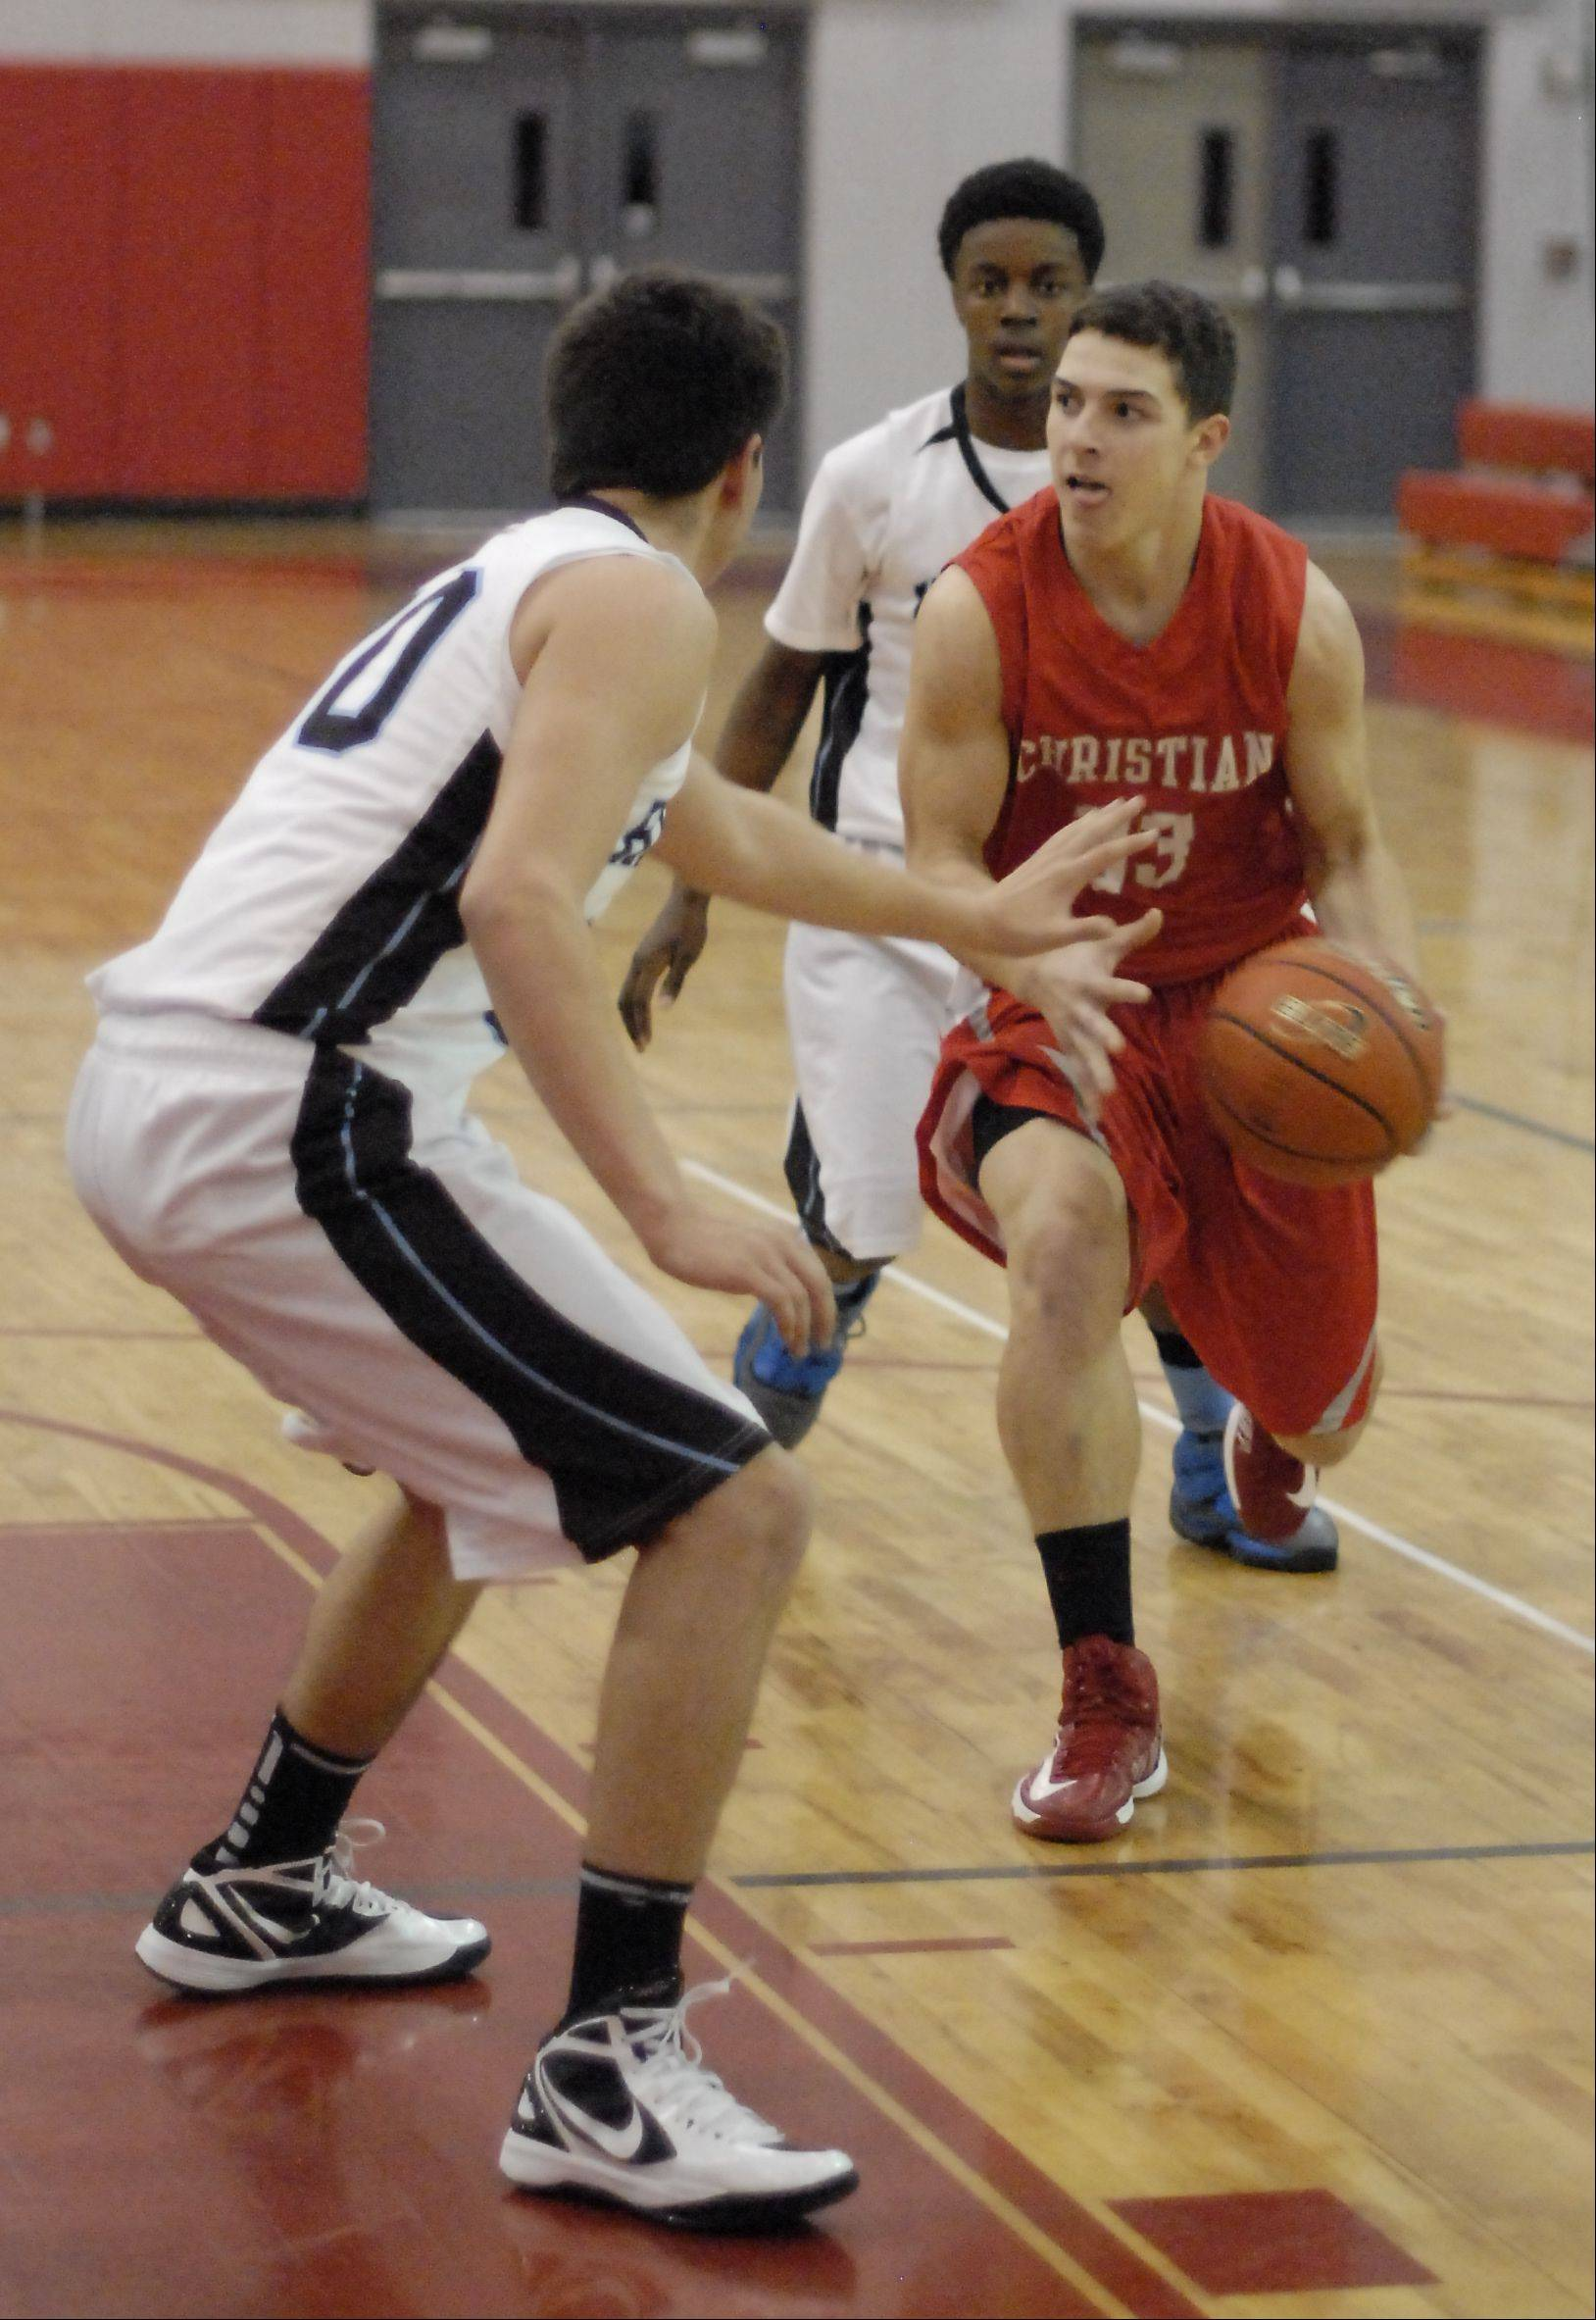 Images from the Aurora Christian vs. Joliet Catholic boys basketball game Wednesday, November 28, 2012.